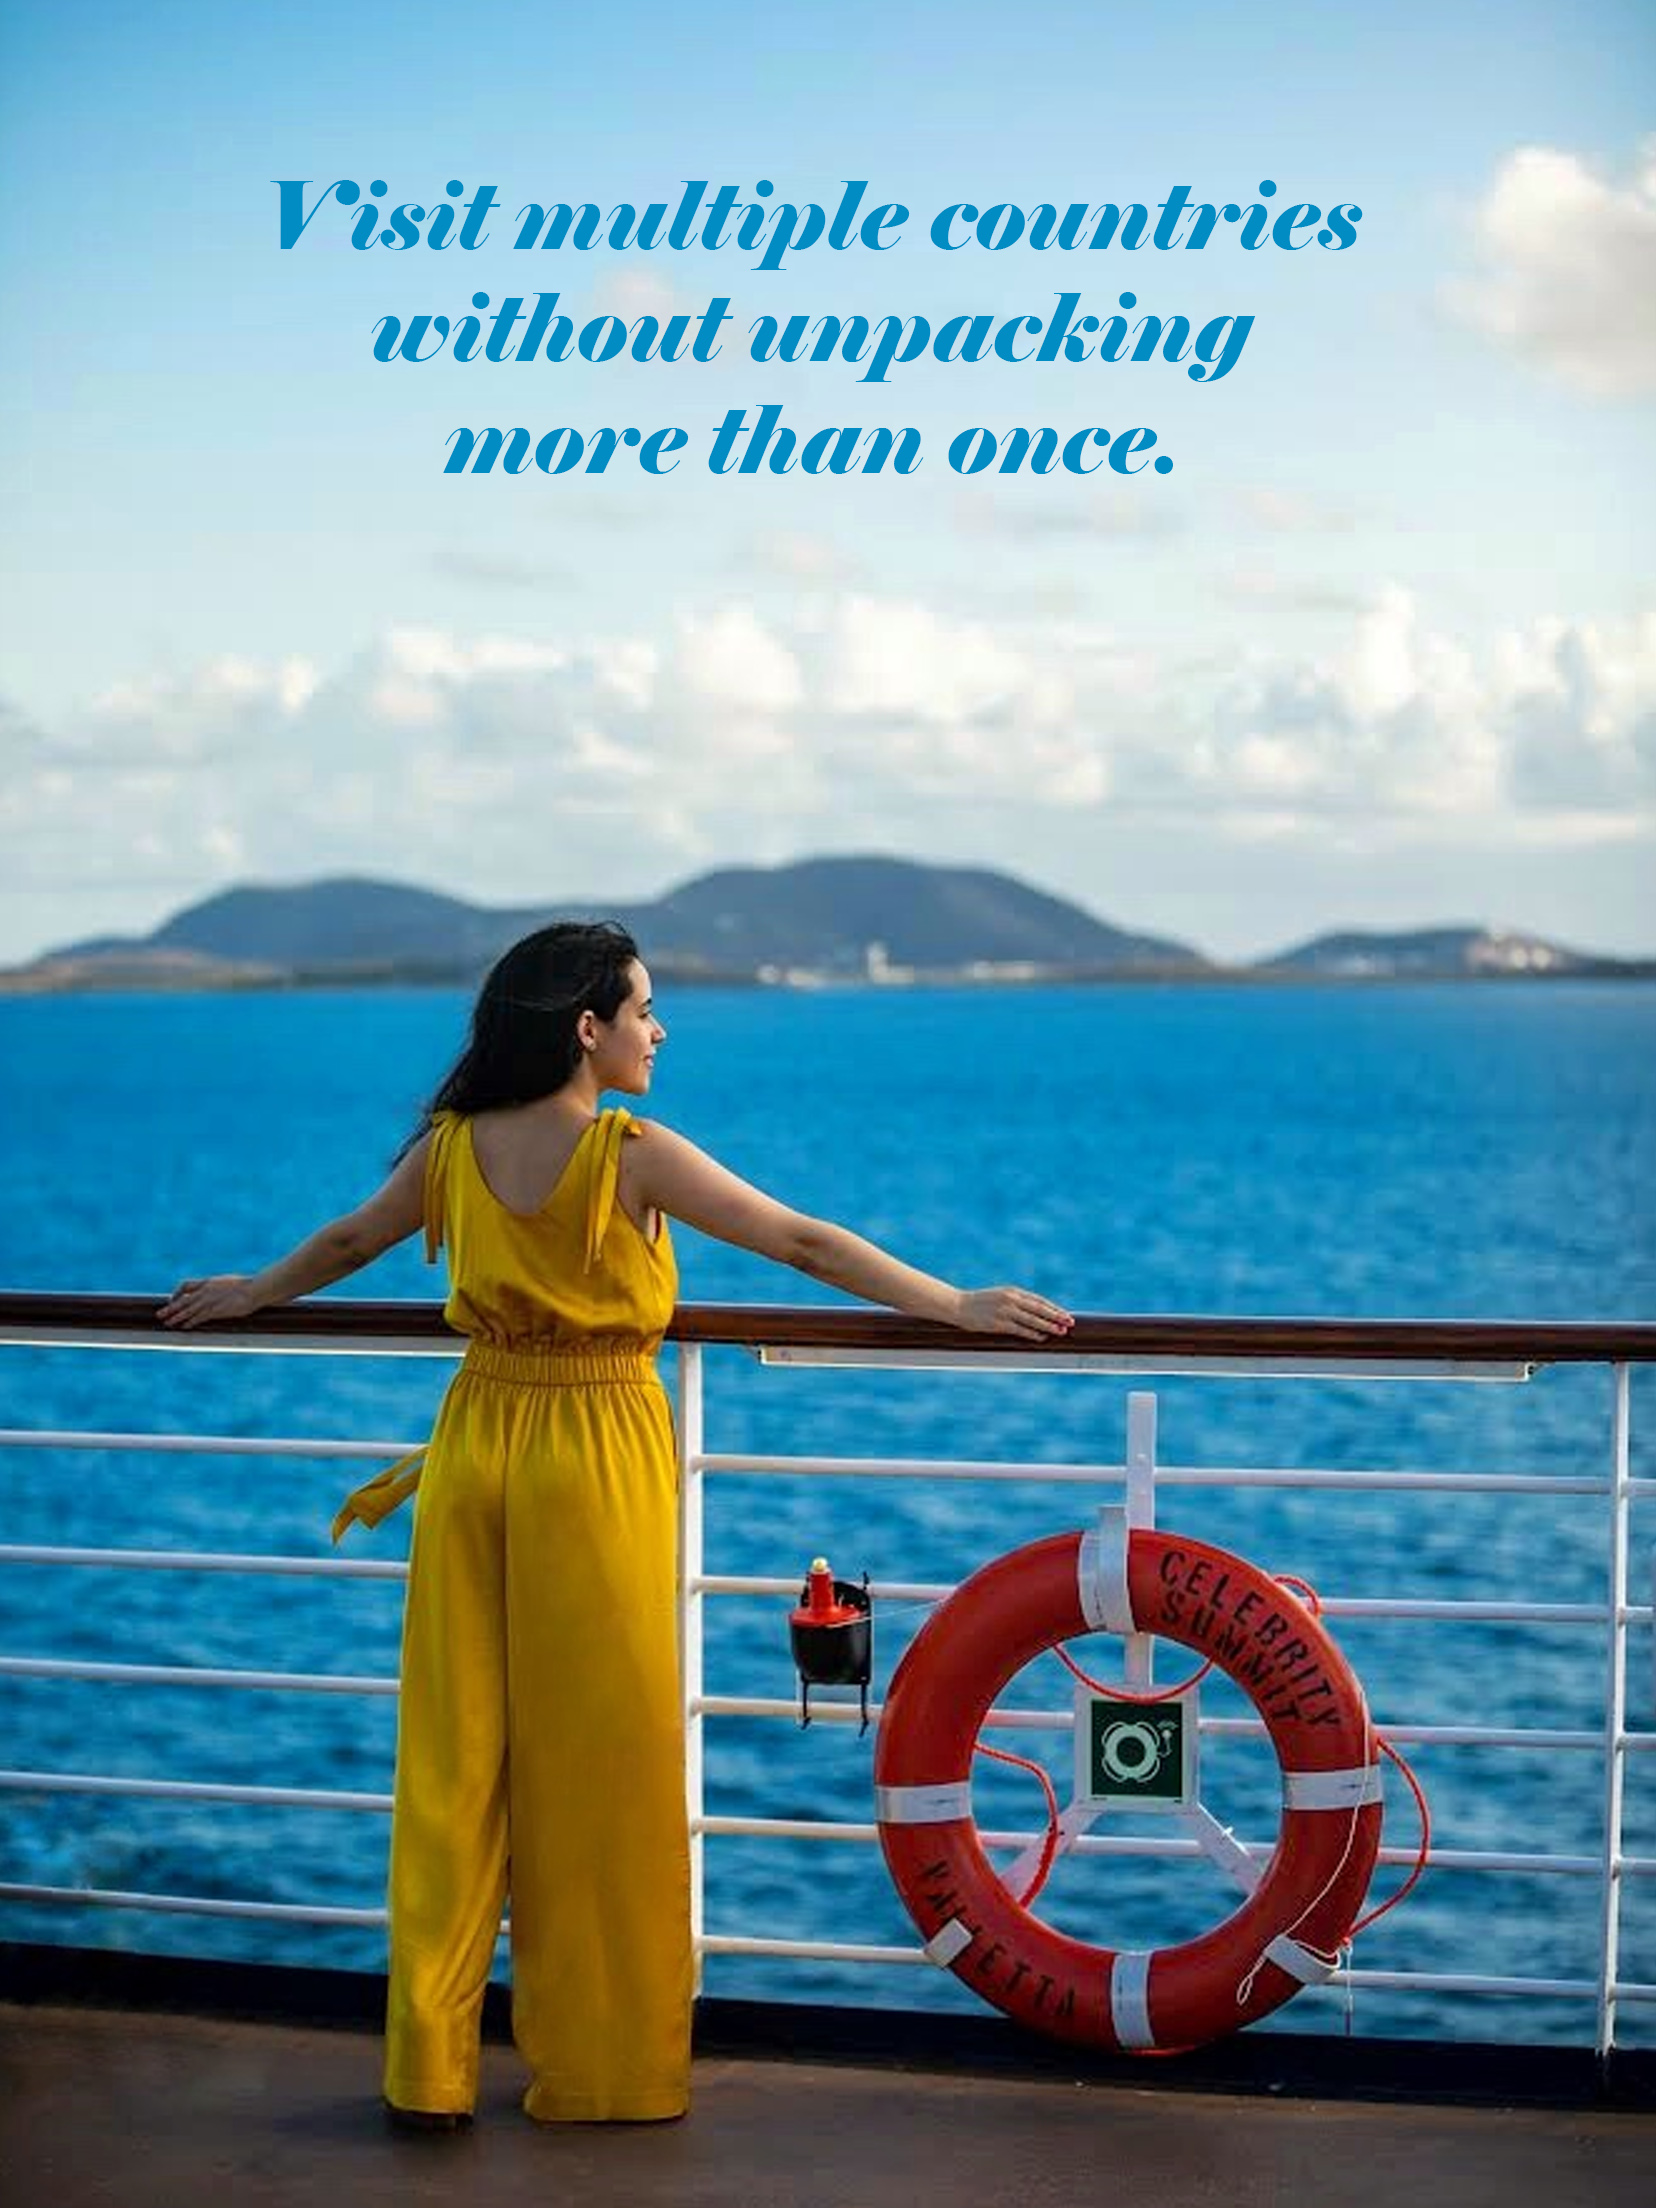 Visit multiple countries without unpacking more than once Celebrity Cruises Summit Revolution Guide